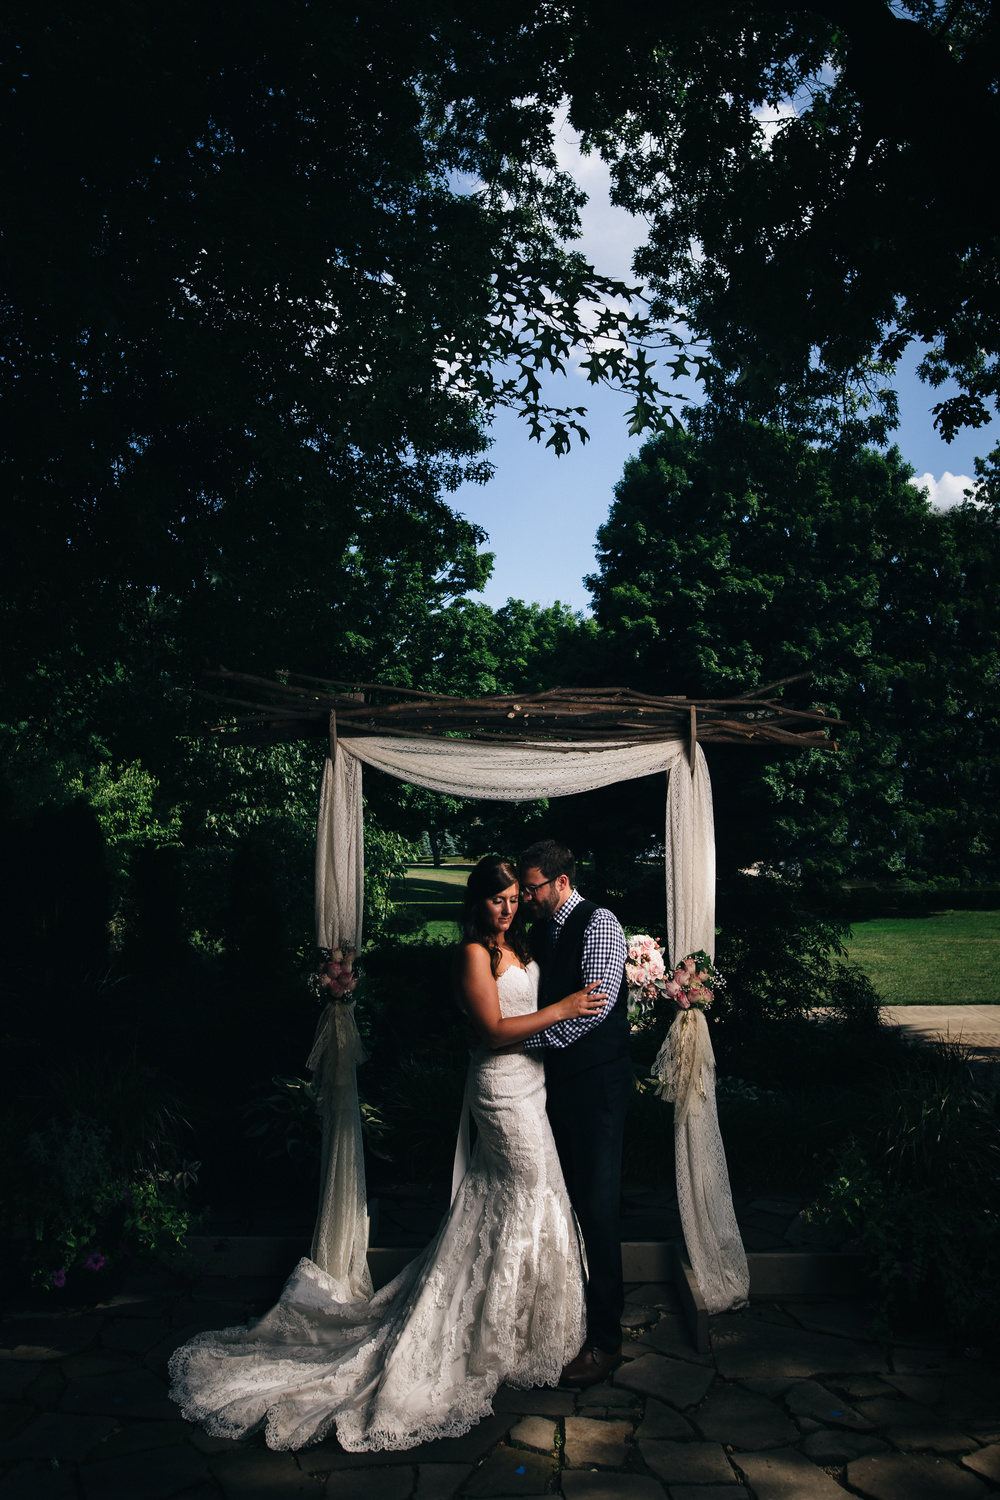 Bride in lace wedding dress with groom in navy blue suit after ceremony.